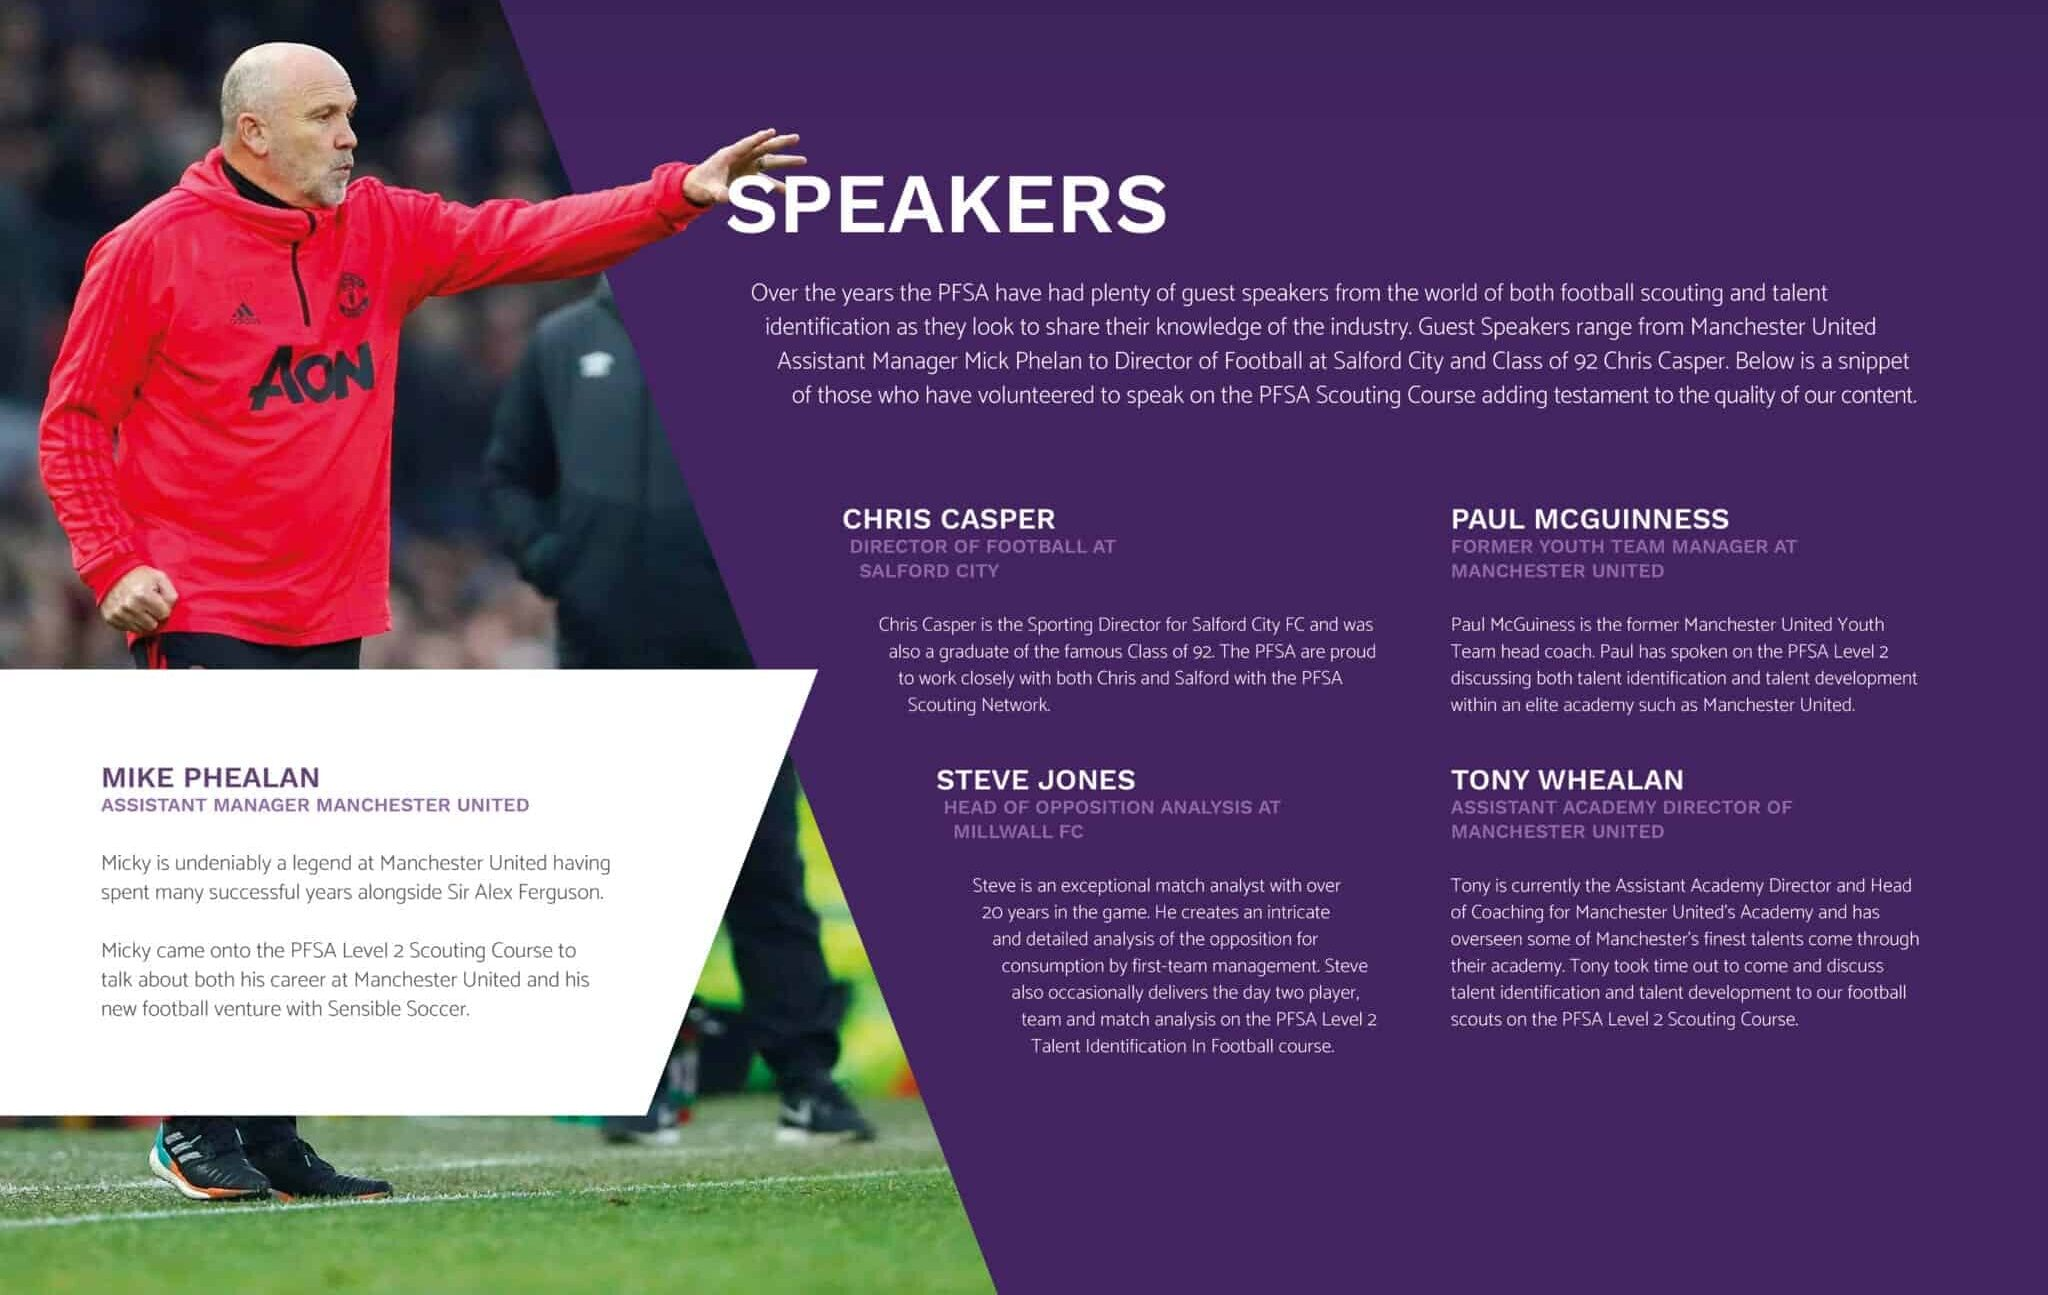 Over the years the PFSA have had plenty of guest speakers from the world of both football scouting and talent identification as they look to share their knowledge of the industry. Guest Speakers range from Manchester United Assistant Manager Mick Phelan to Director of Football at Salford City and Class of 92 Chris Casper. Below is a snippet of those who have volunteered to speak on the PFSA Scouting Course adding testament to the quality of our content.